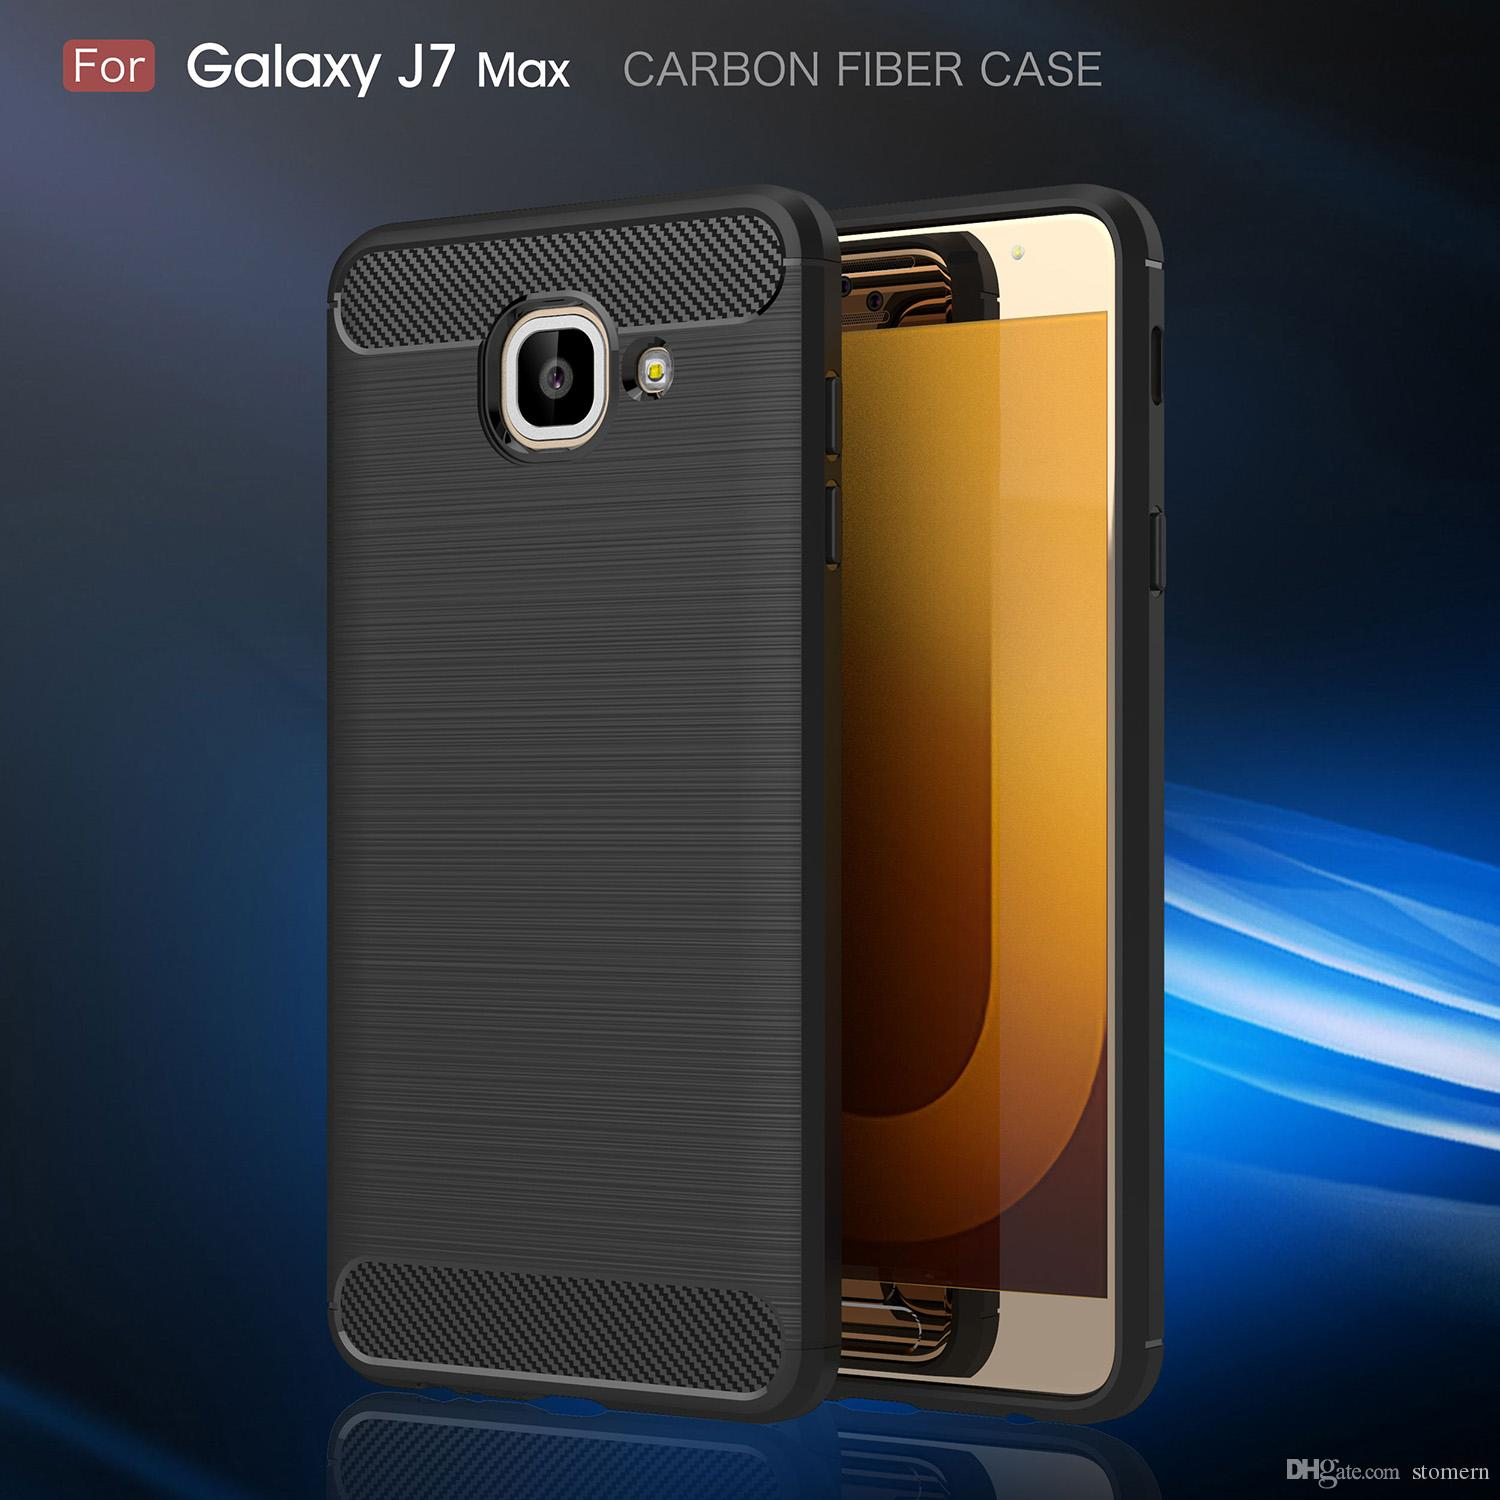 Carbon Fiber Case For Samsung Galaxy J7 Max G530 Grand Prime J2 J1 Mini Prime C9 Pro C7 C5 Brushed Silicone Soft Rubber Back Cover